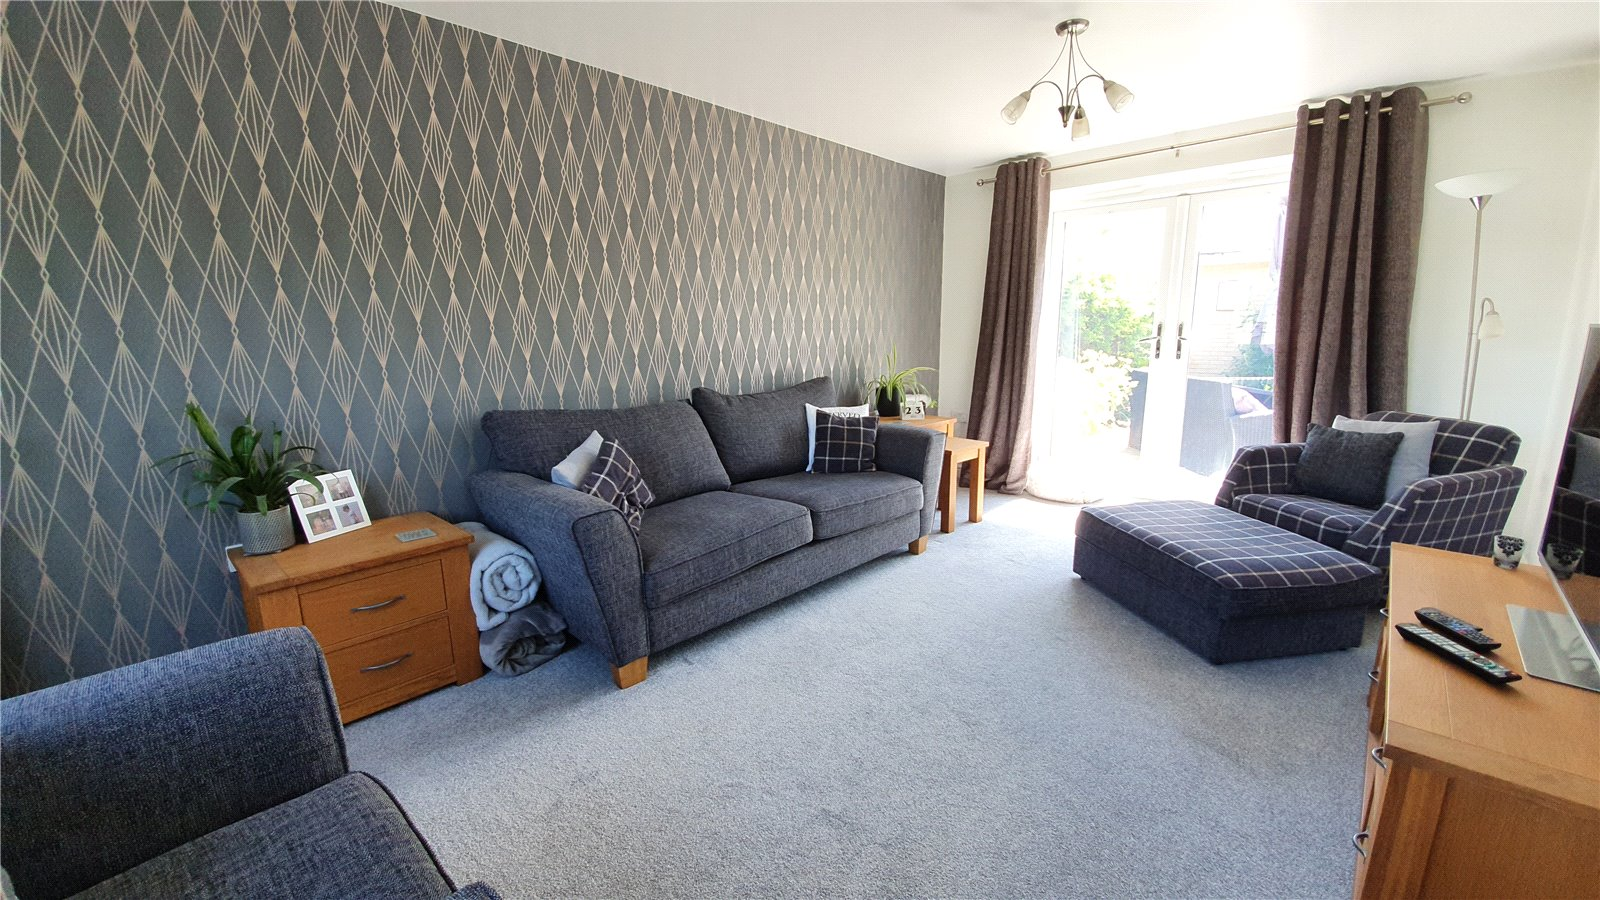 3 bed house for sale in Lannesbury Crescent, St Neots  - Property Image 9